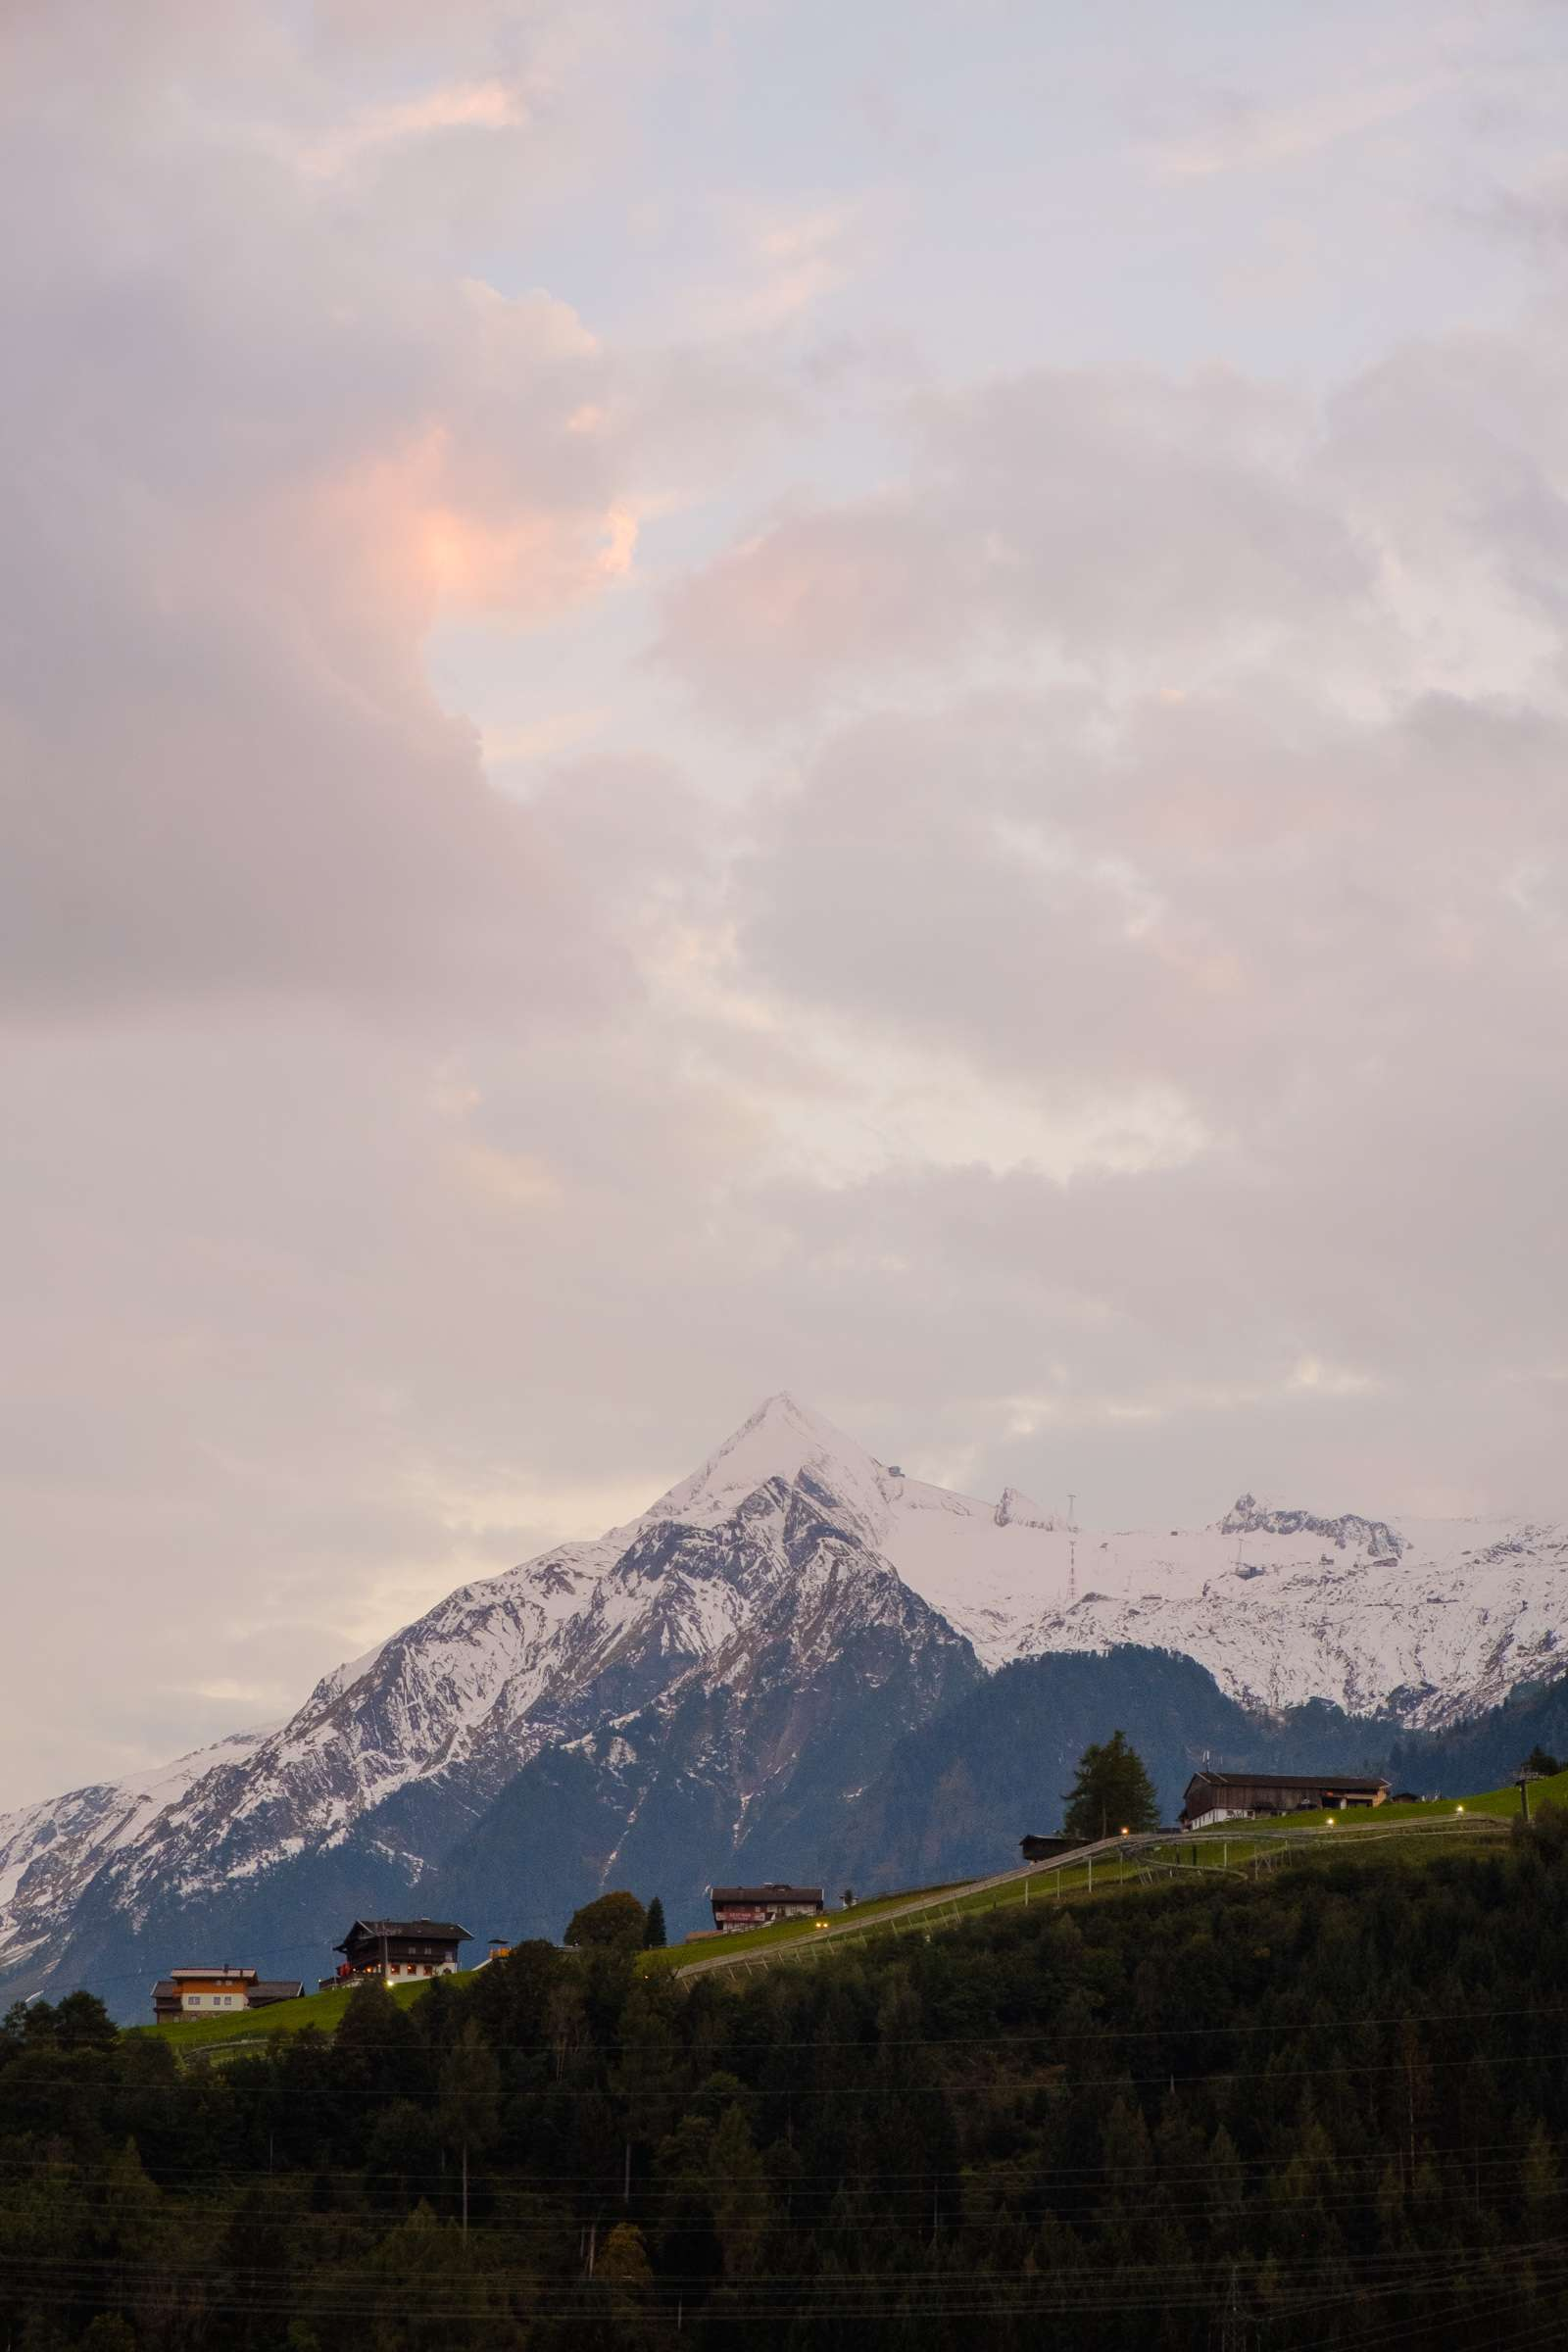 Pink fluffy sunset over Kitzsteinhorn with wooden houses in the foreground